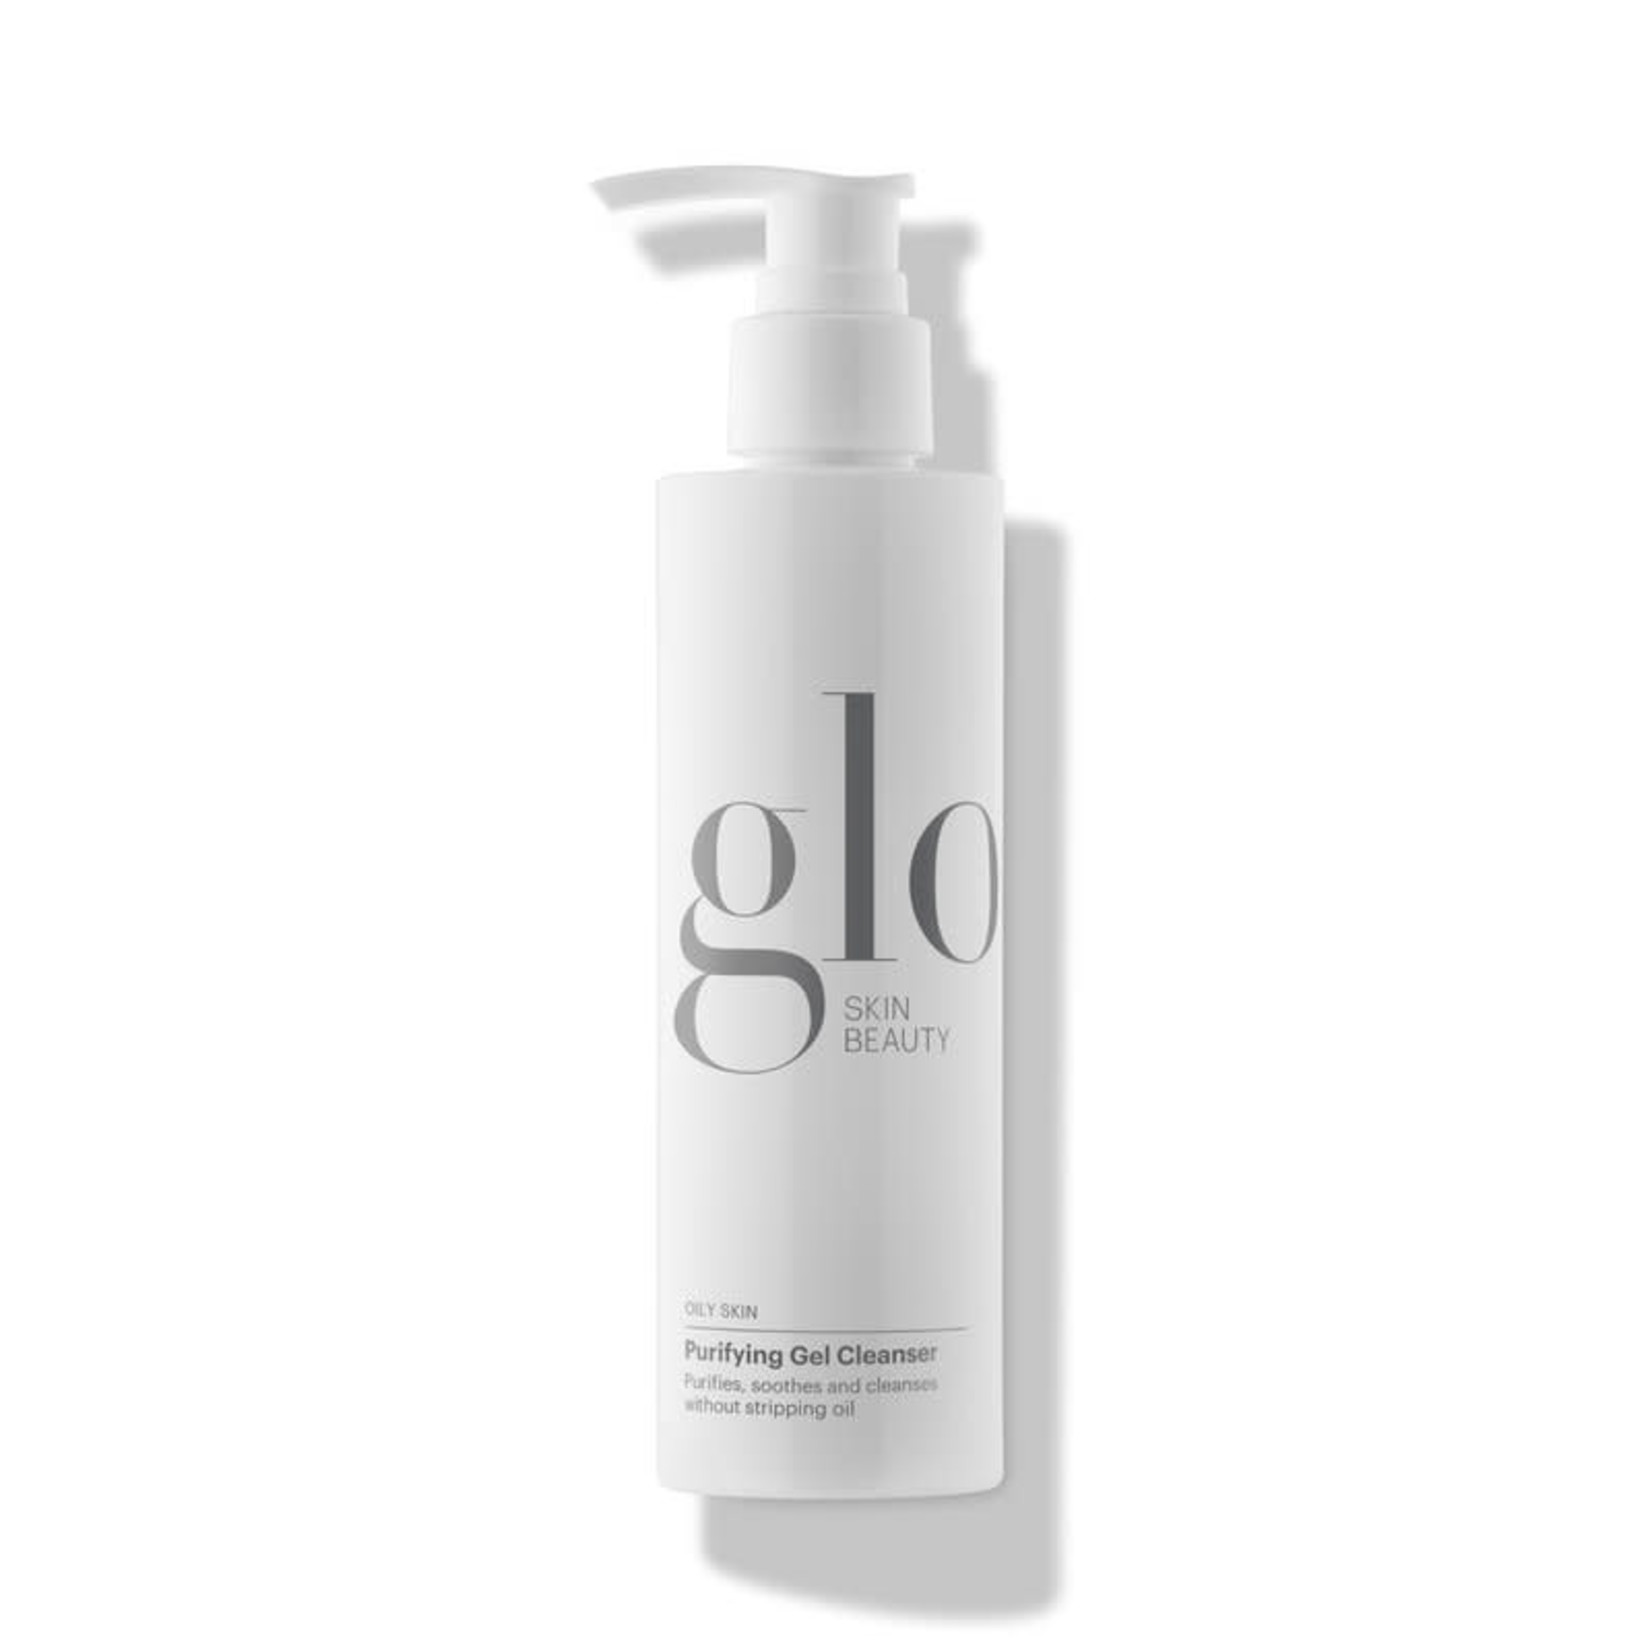 Glo Skin Beauty Purifying Gel Cleanser